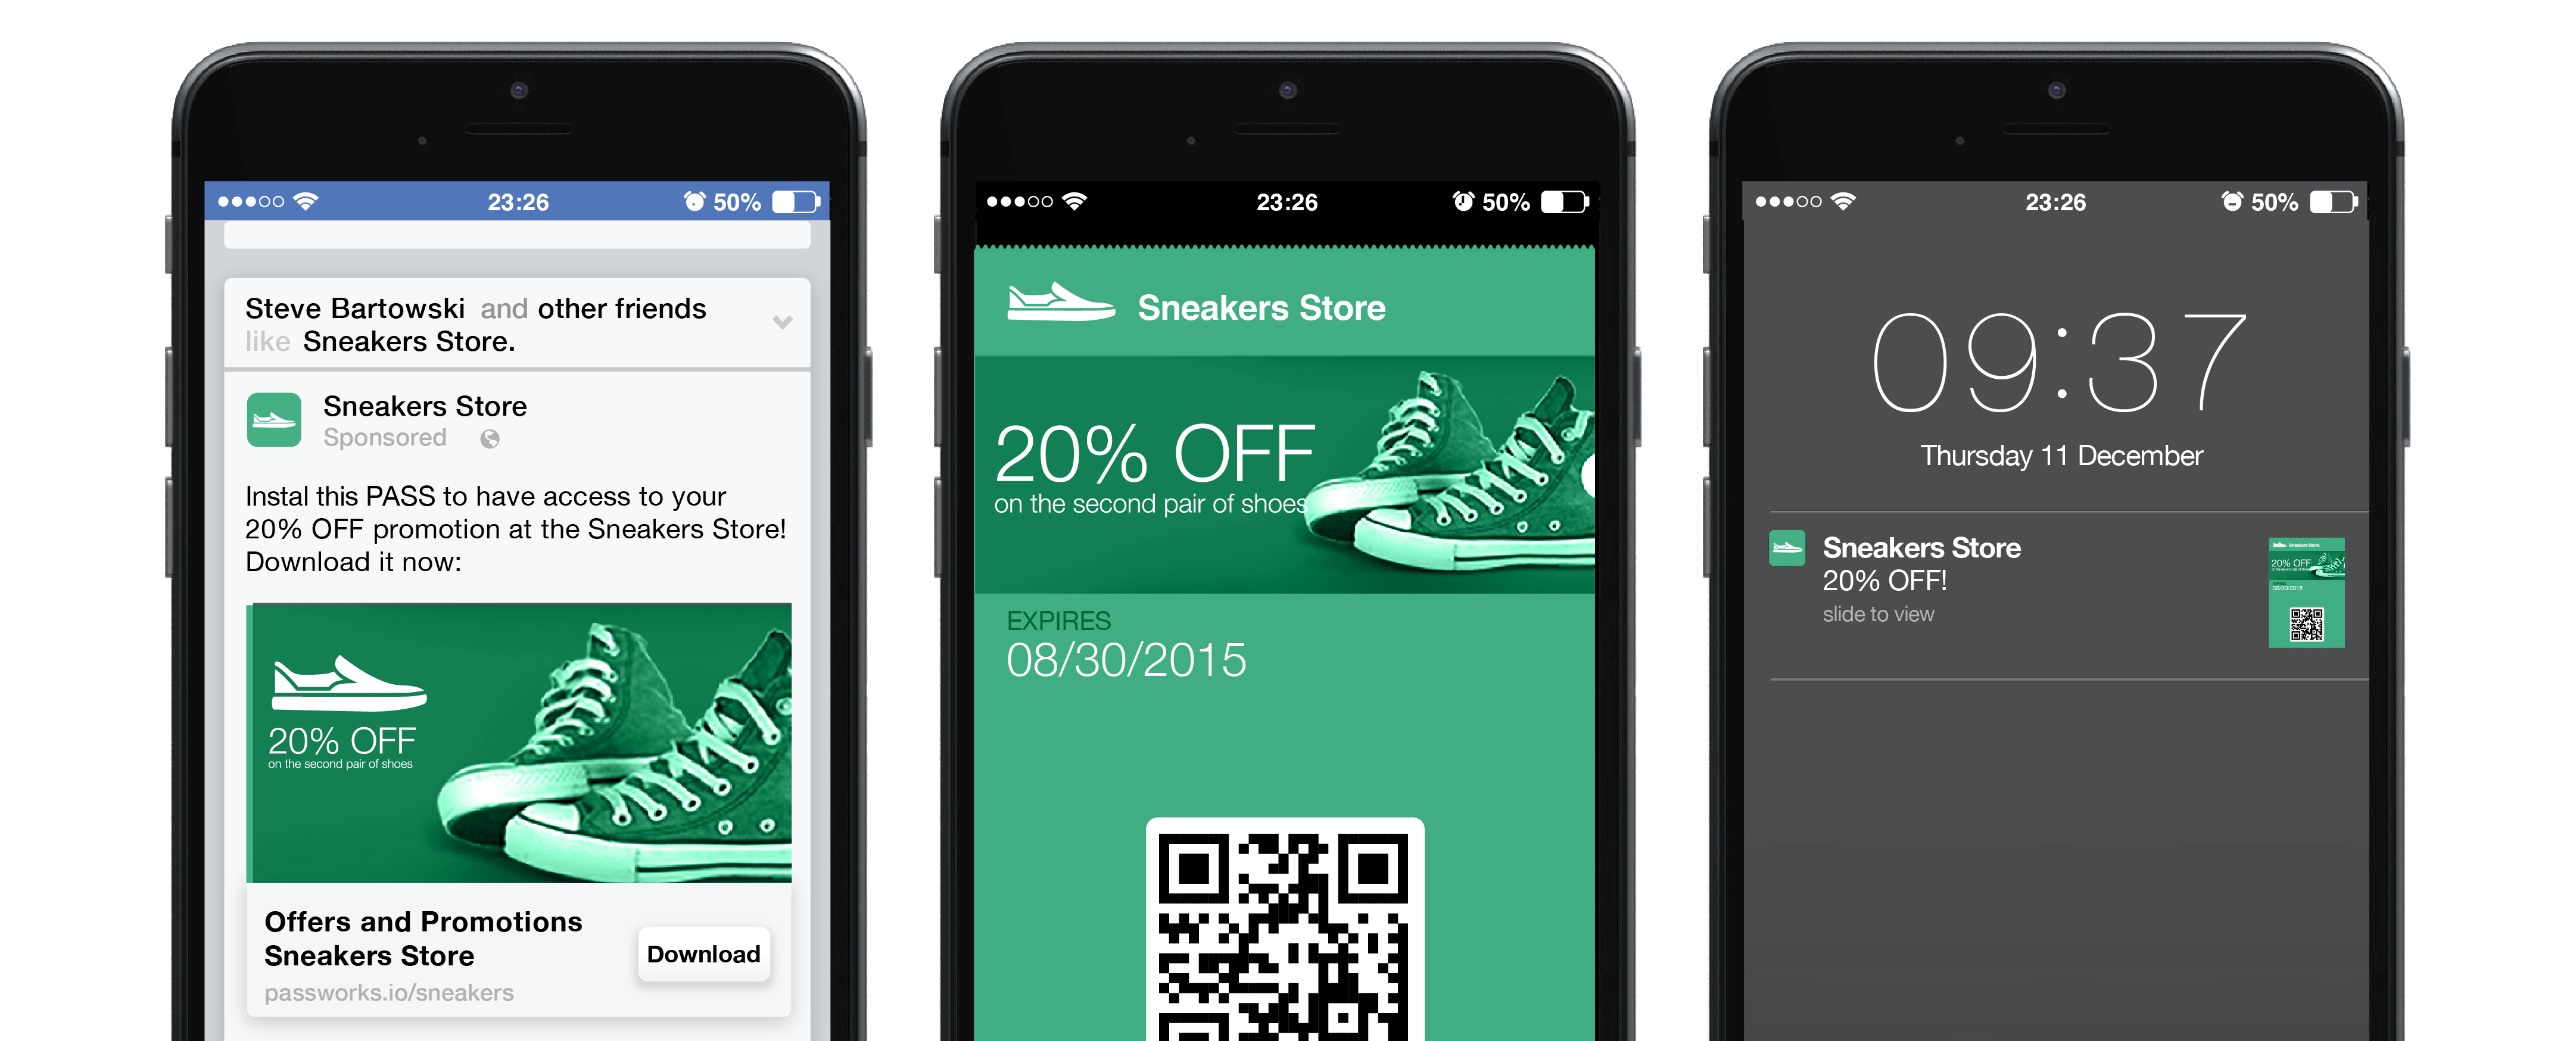 How social media can boost a Mobile Marketing campaign using Passbook